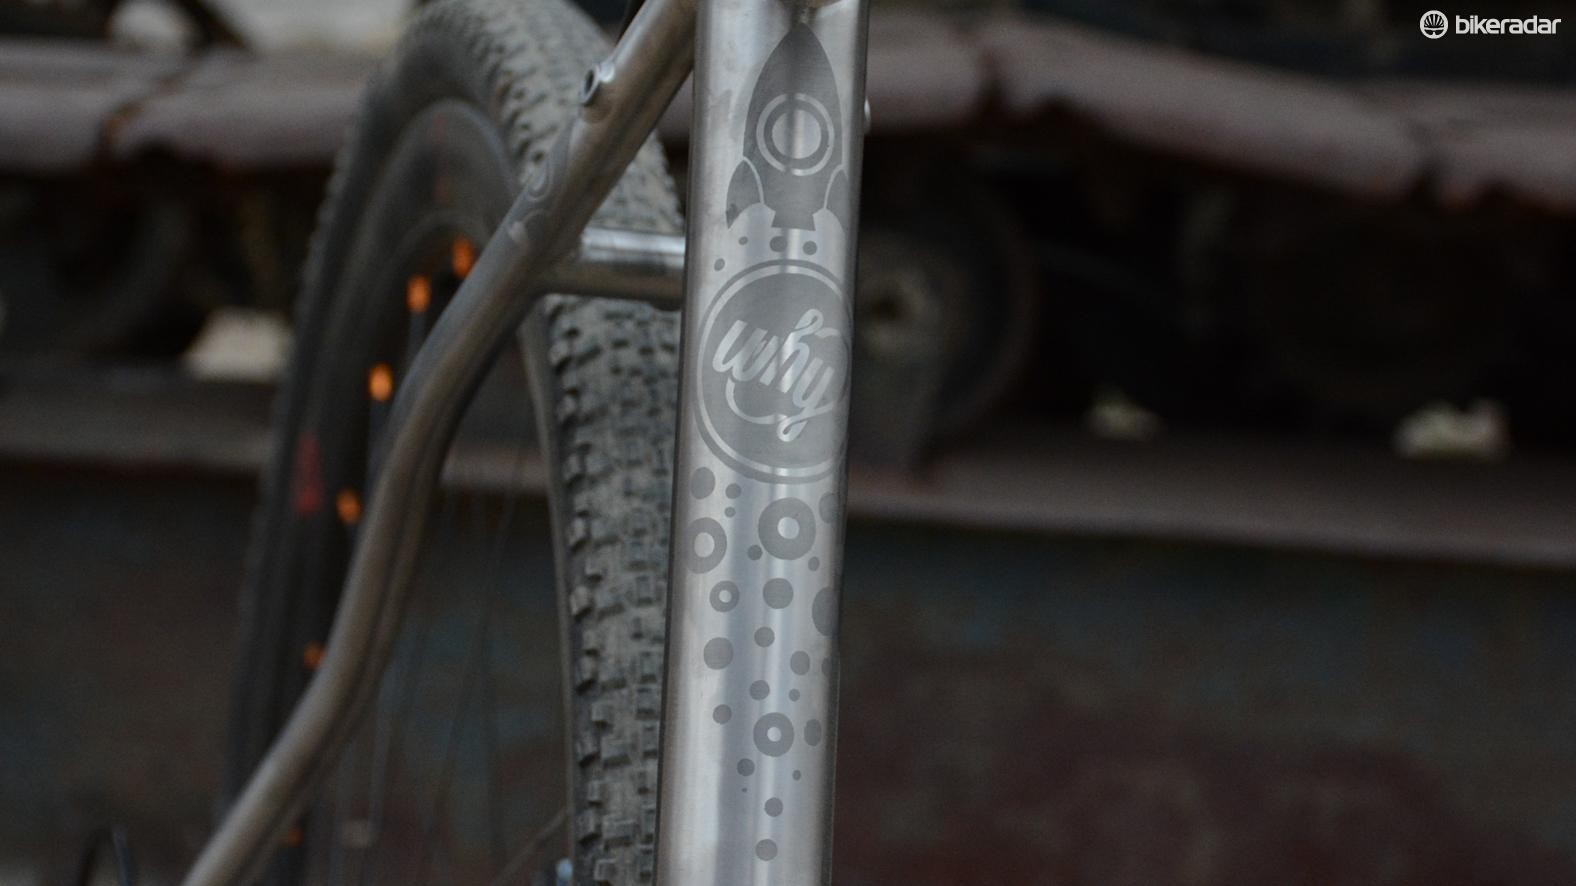 The seat tube displays a little lighthearted artistry